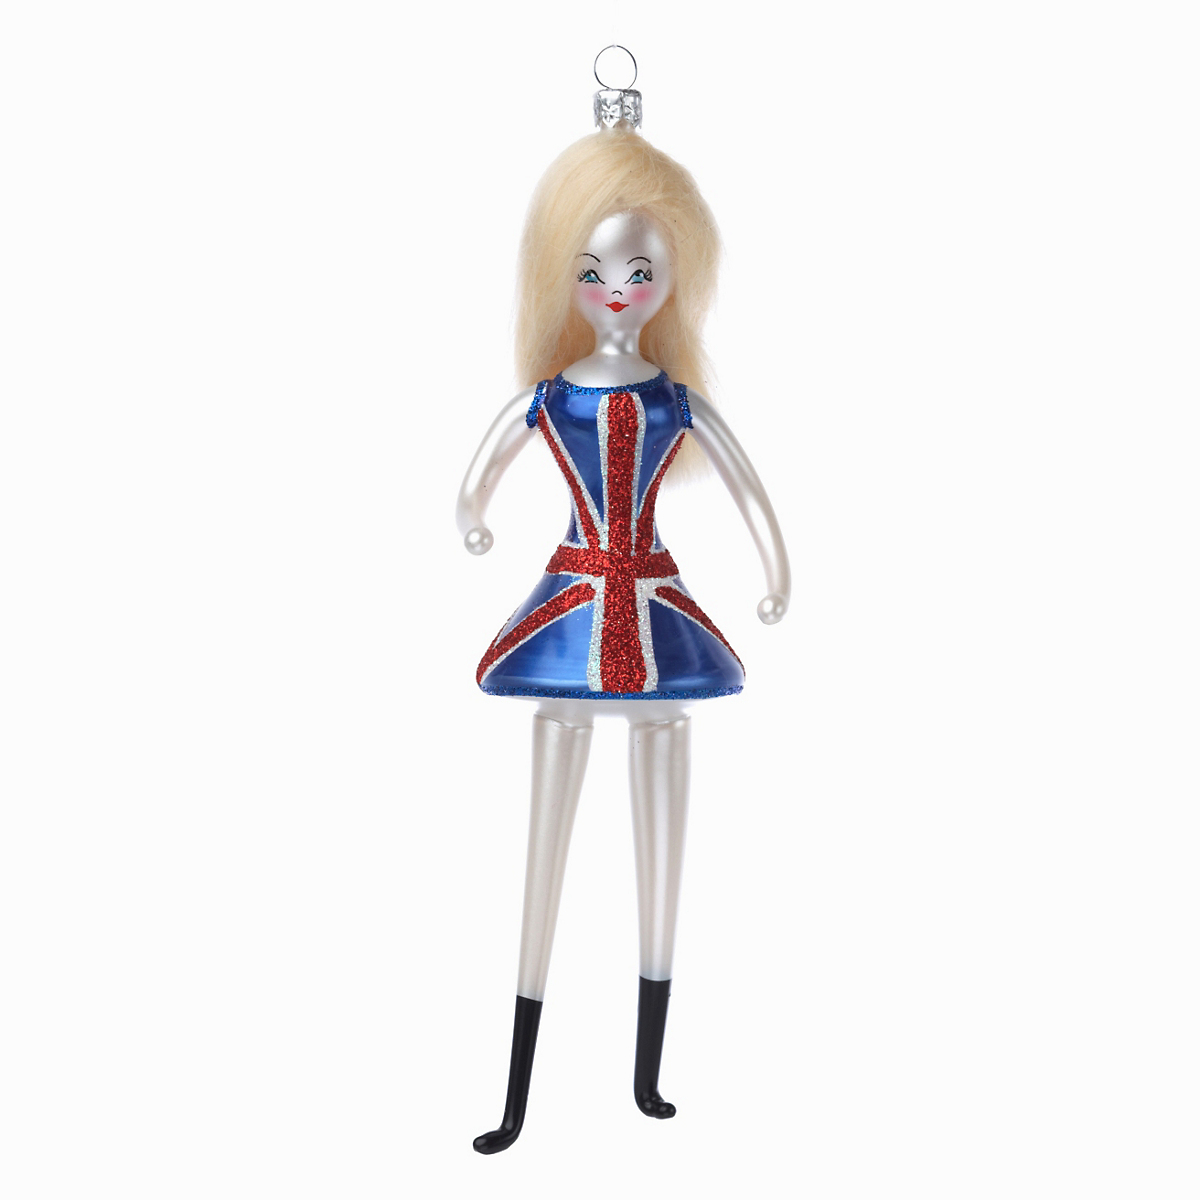 Mod Girl Christmas Ornament